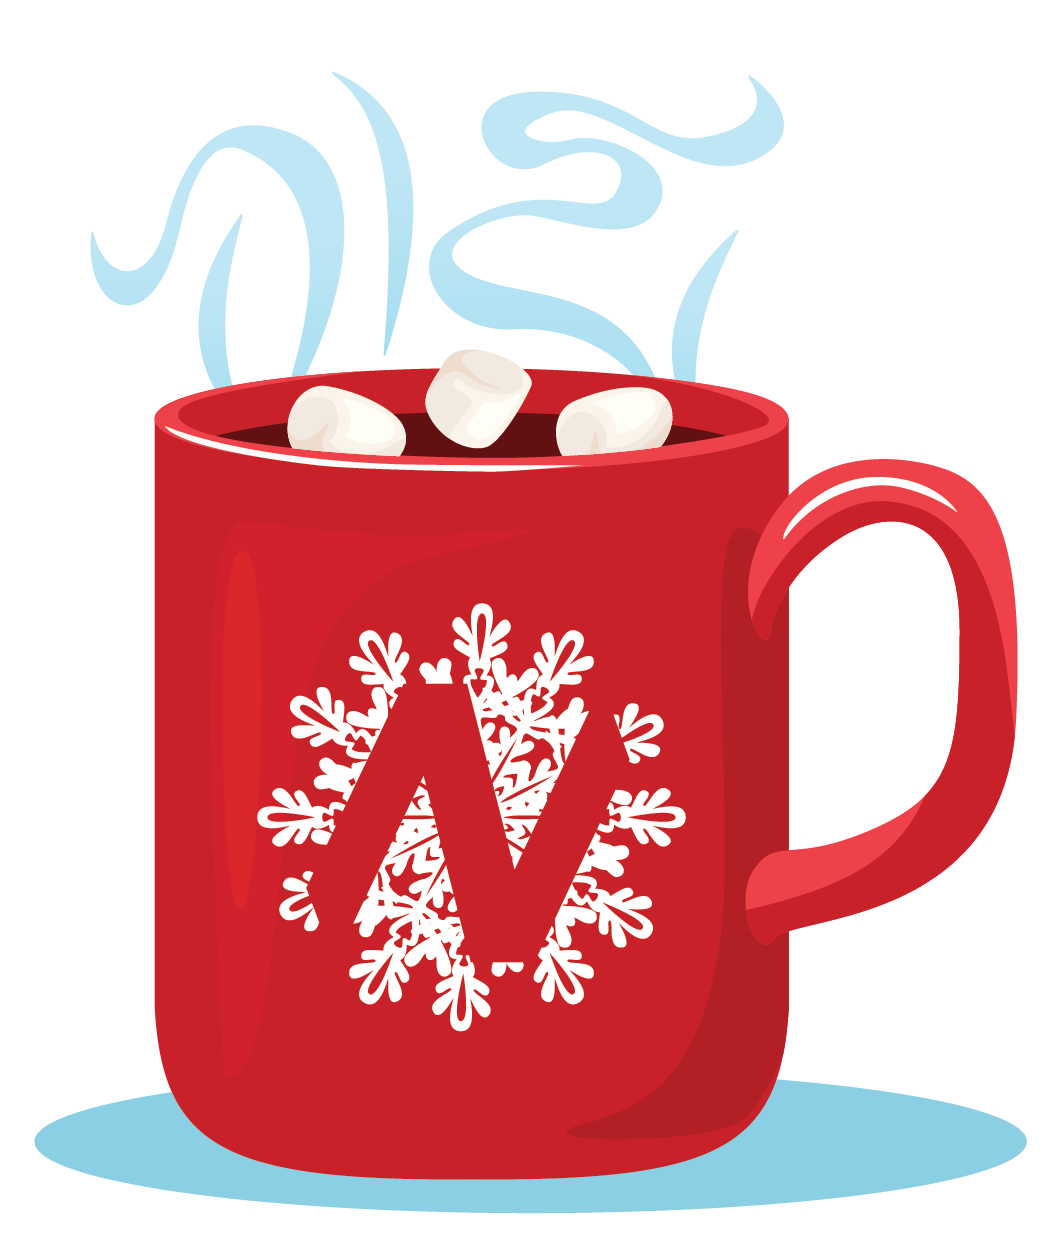 Cup of hot chocolate in a NET holiday logo mug.